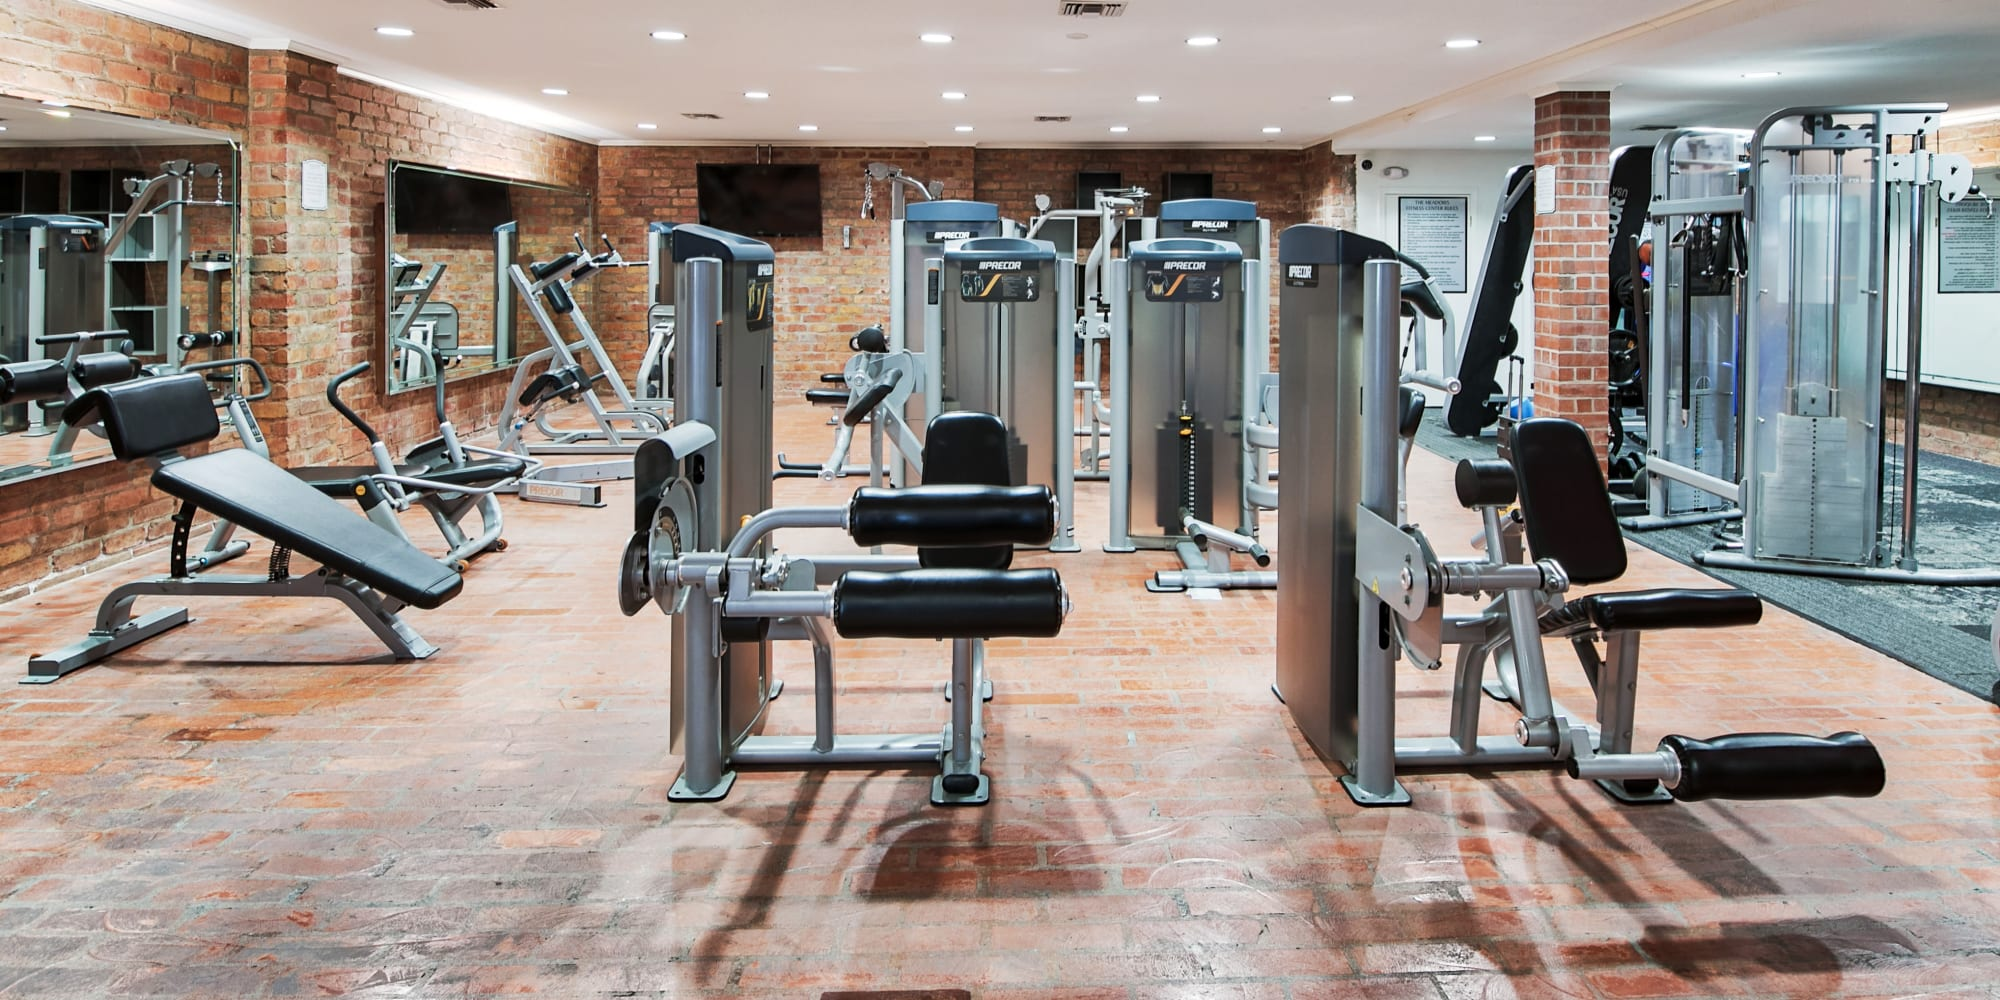 Onsite fitness center with a wide variety of exercise equipment at The Meadows in Culver City, California